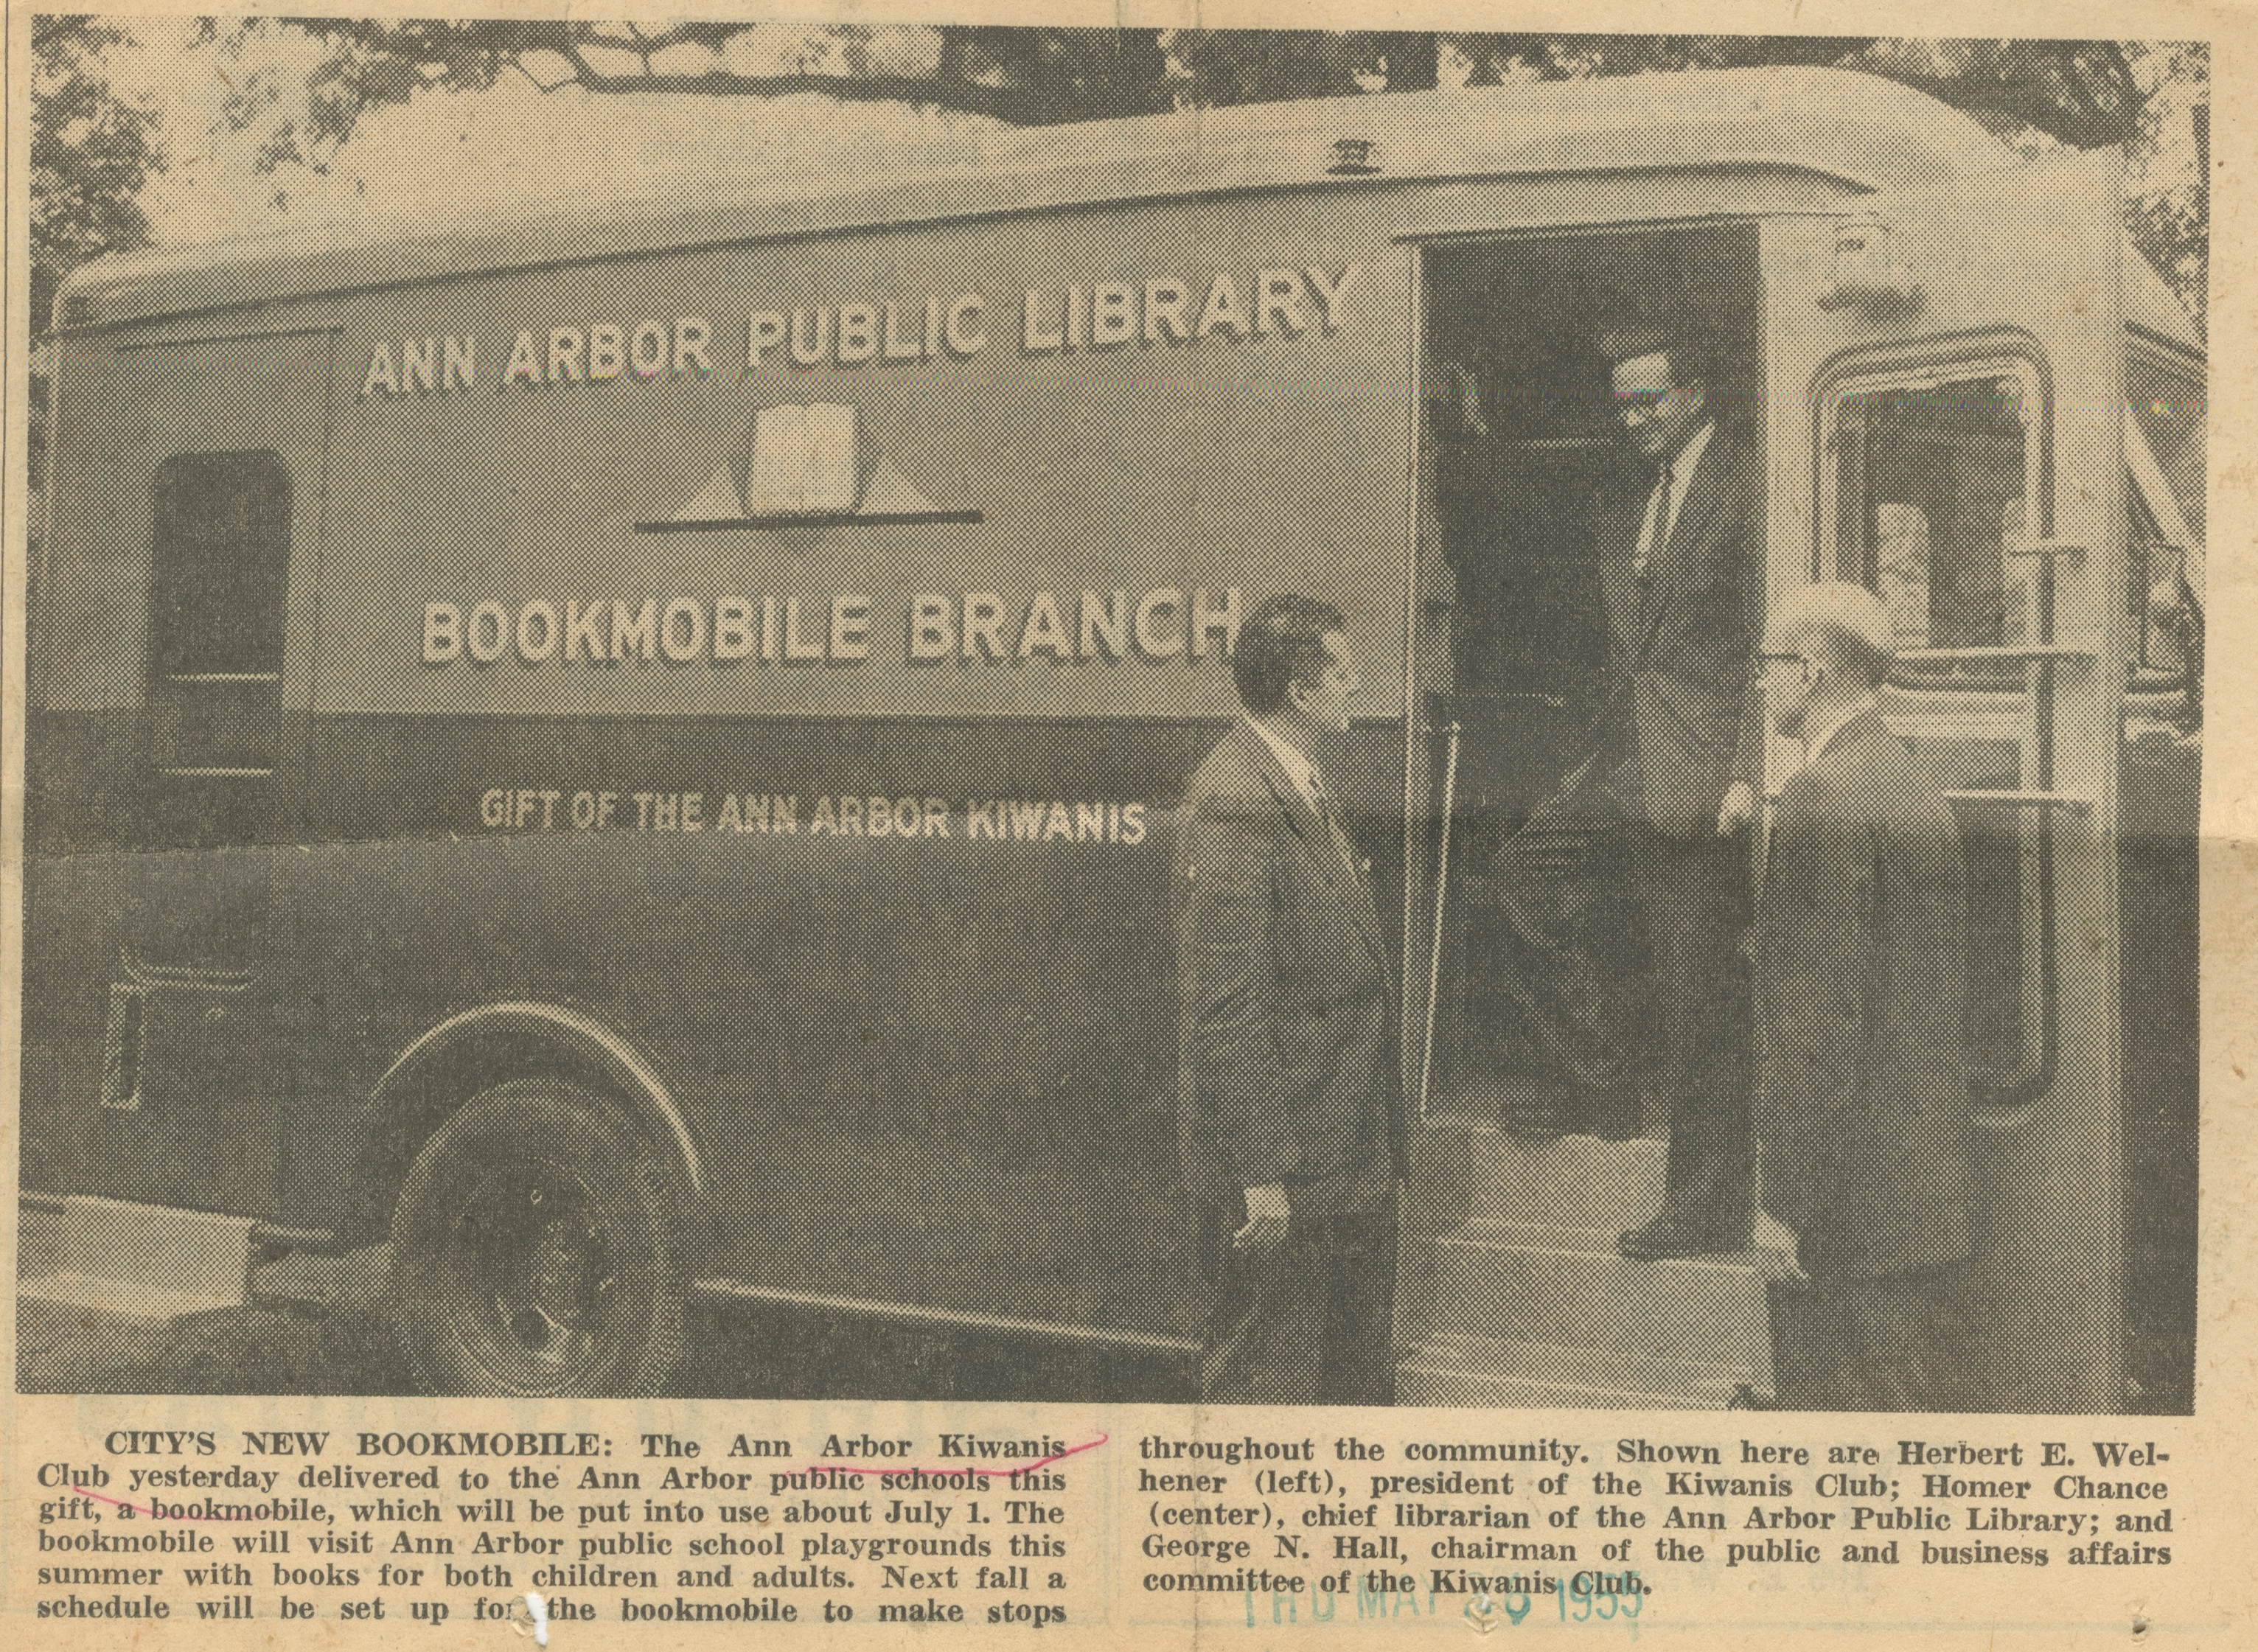 City's New Bookmobile image